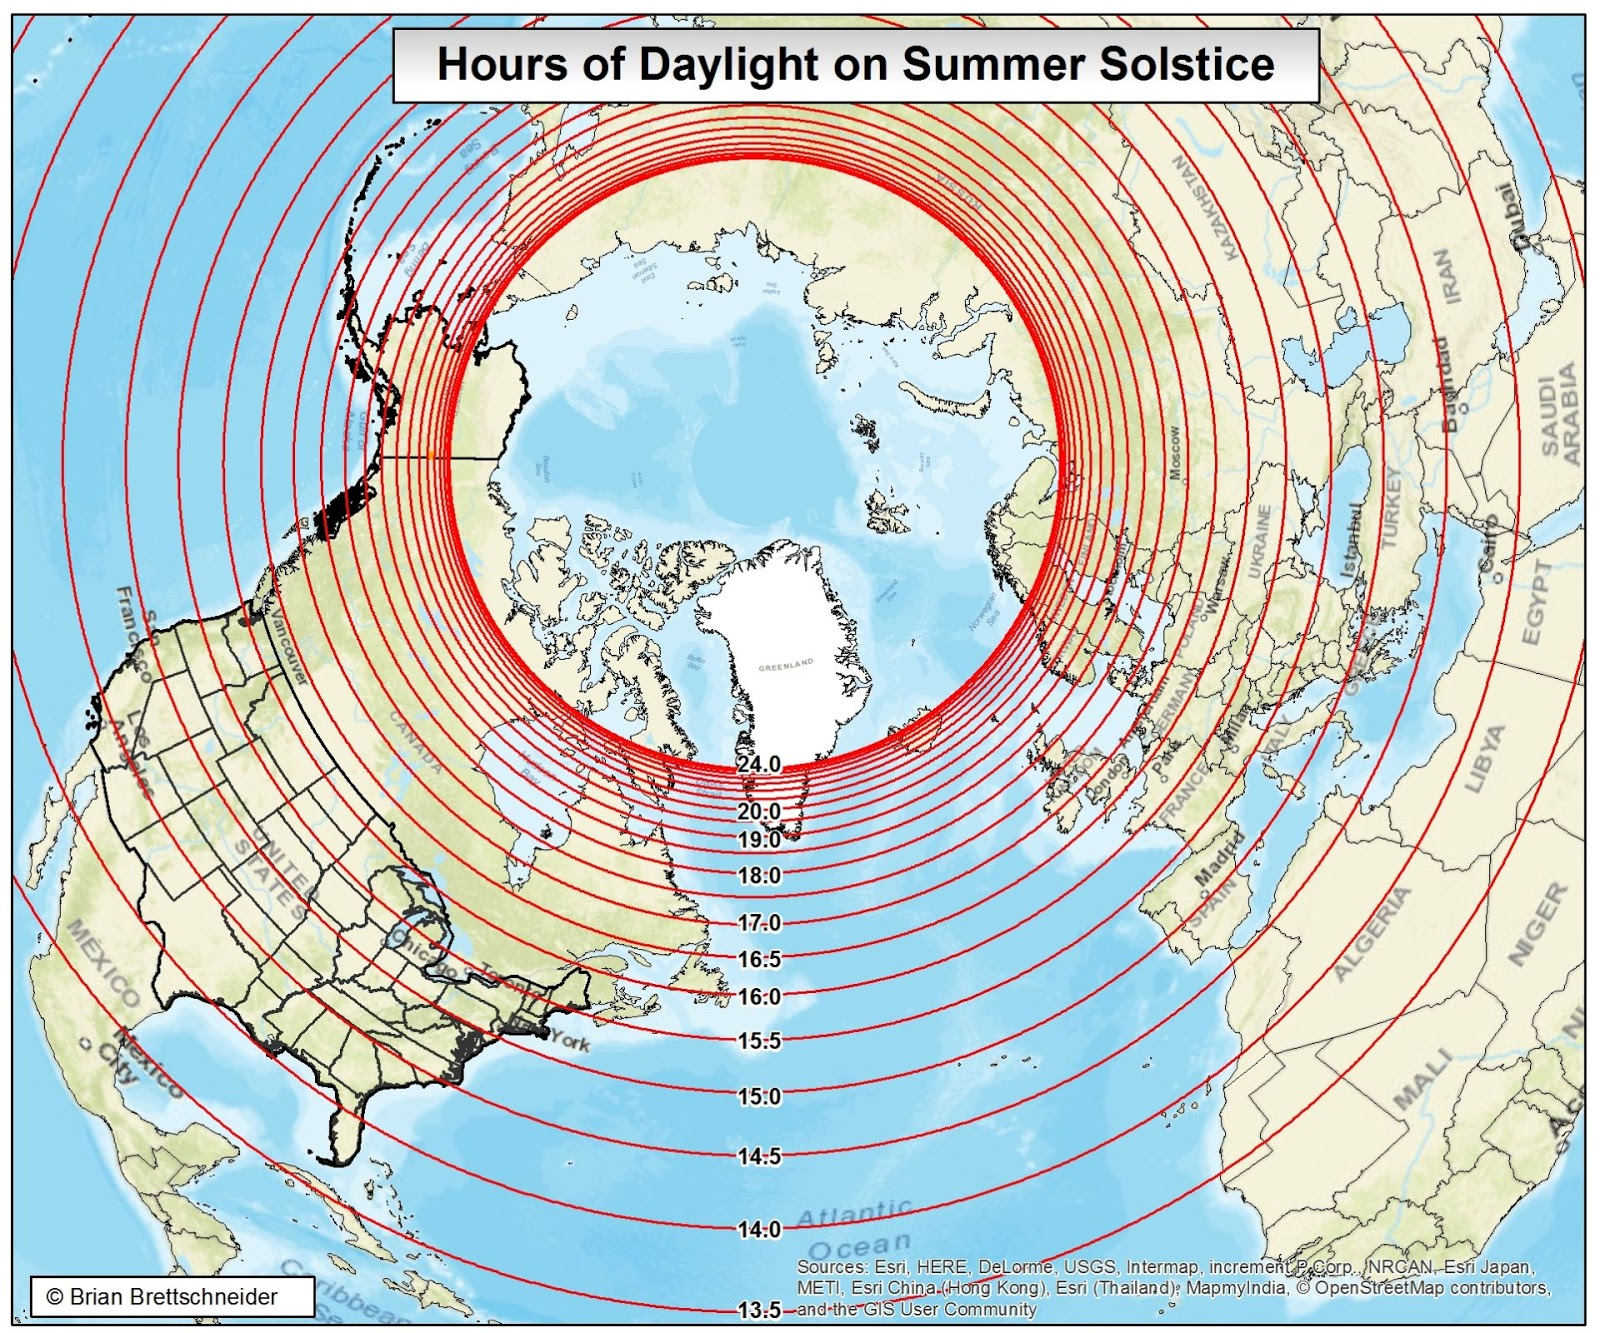 Hours of Daylight on the Summer Solstice